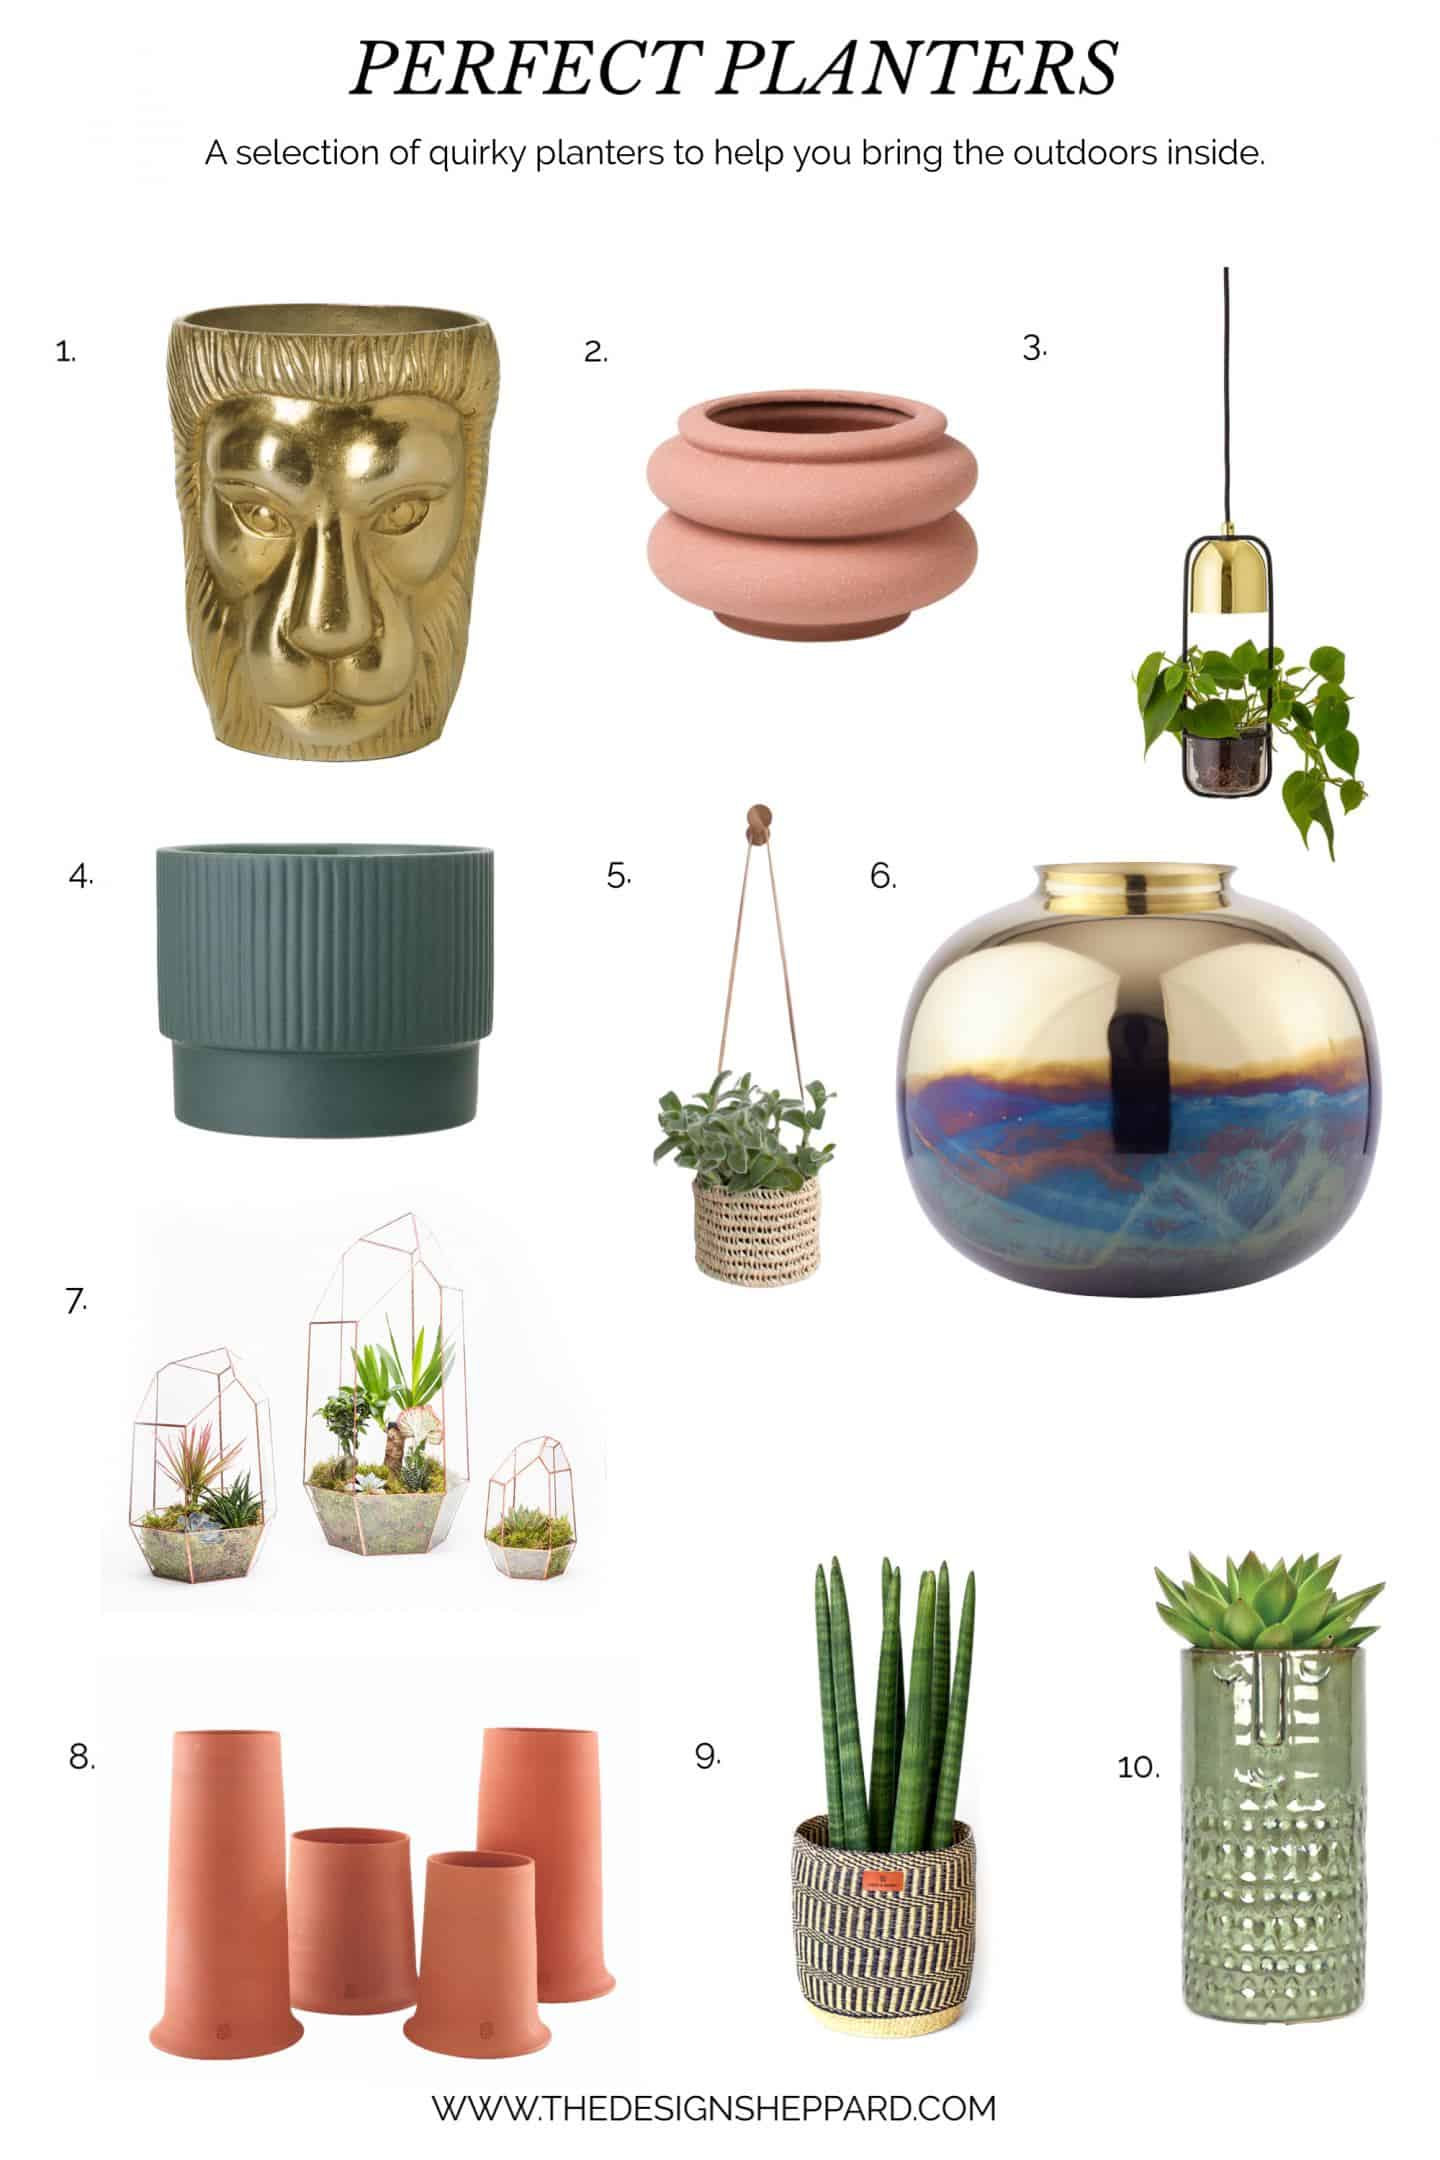 A selection of quirky planters to add personality to your home.